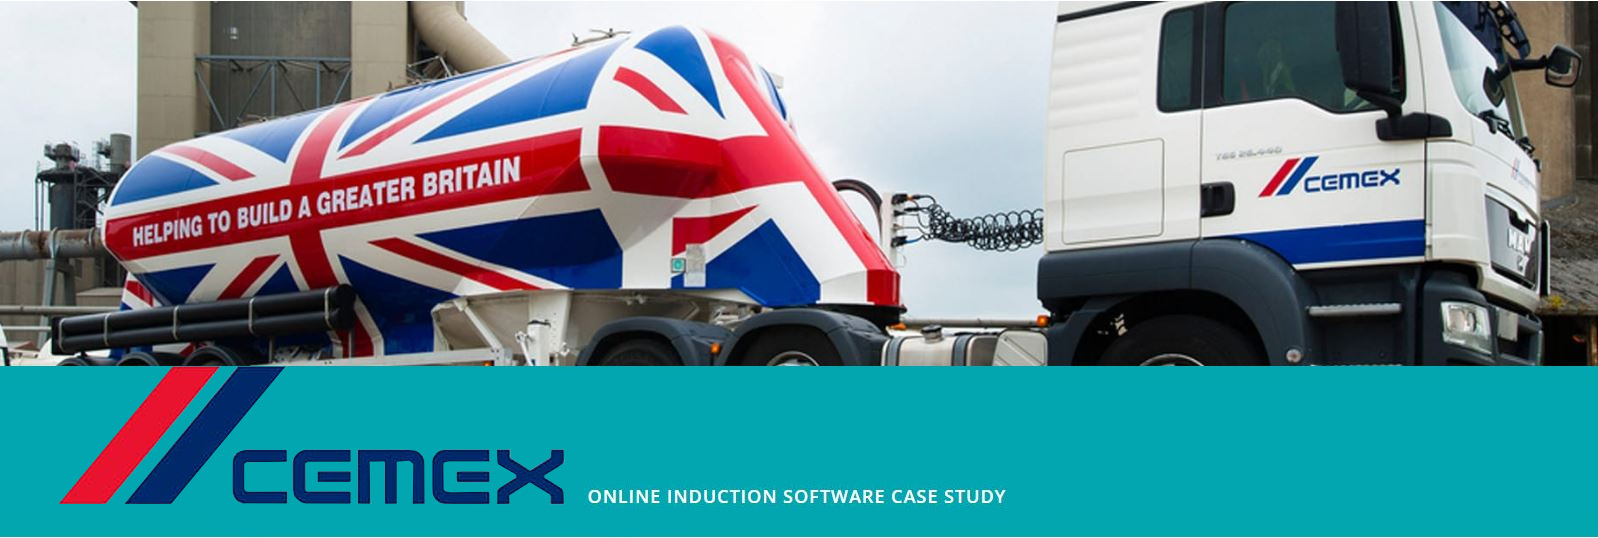 cemex-induction-case-study